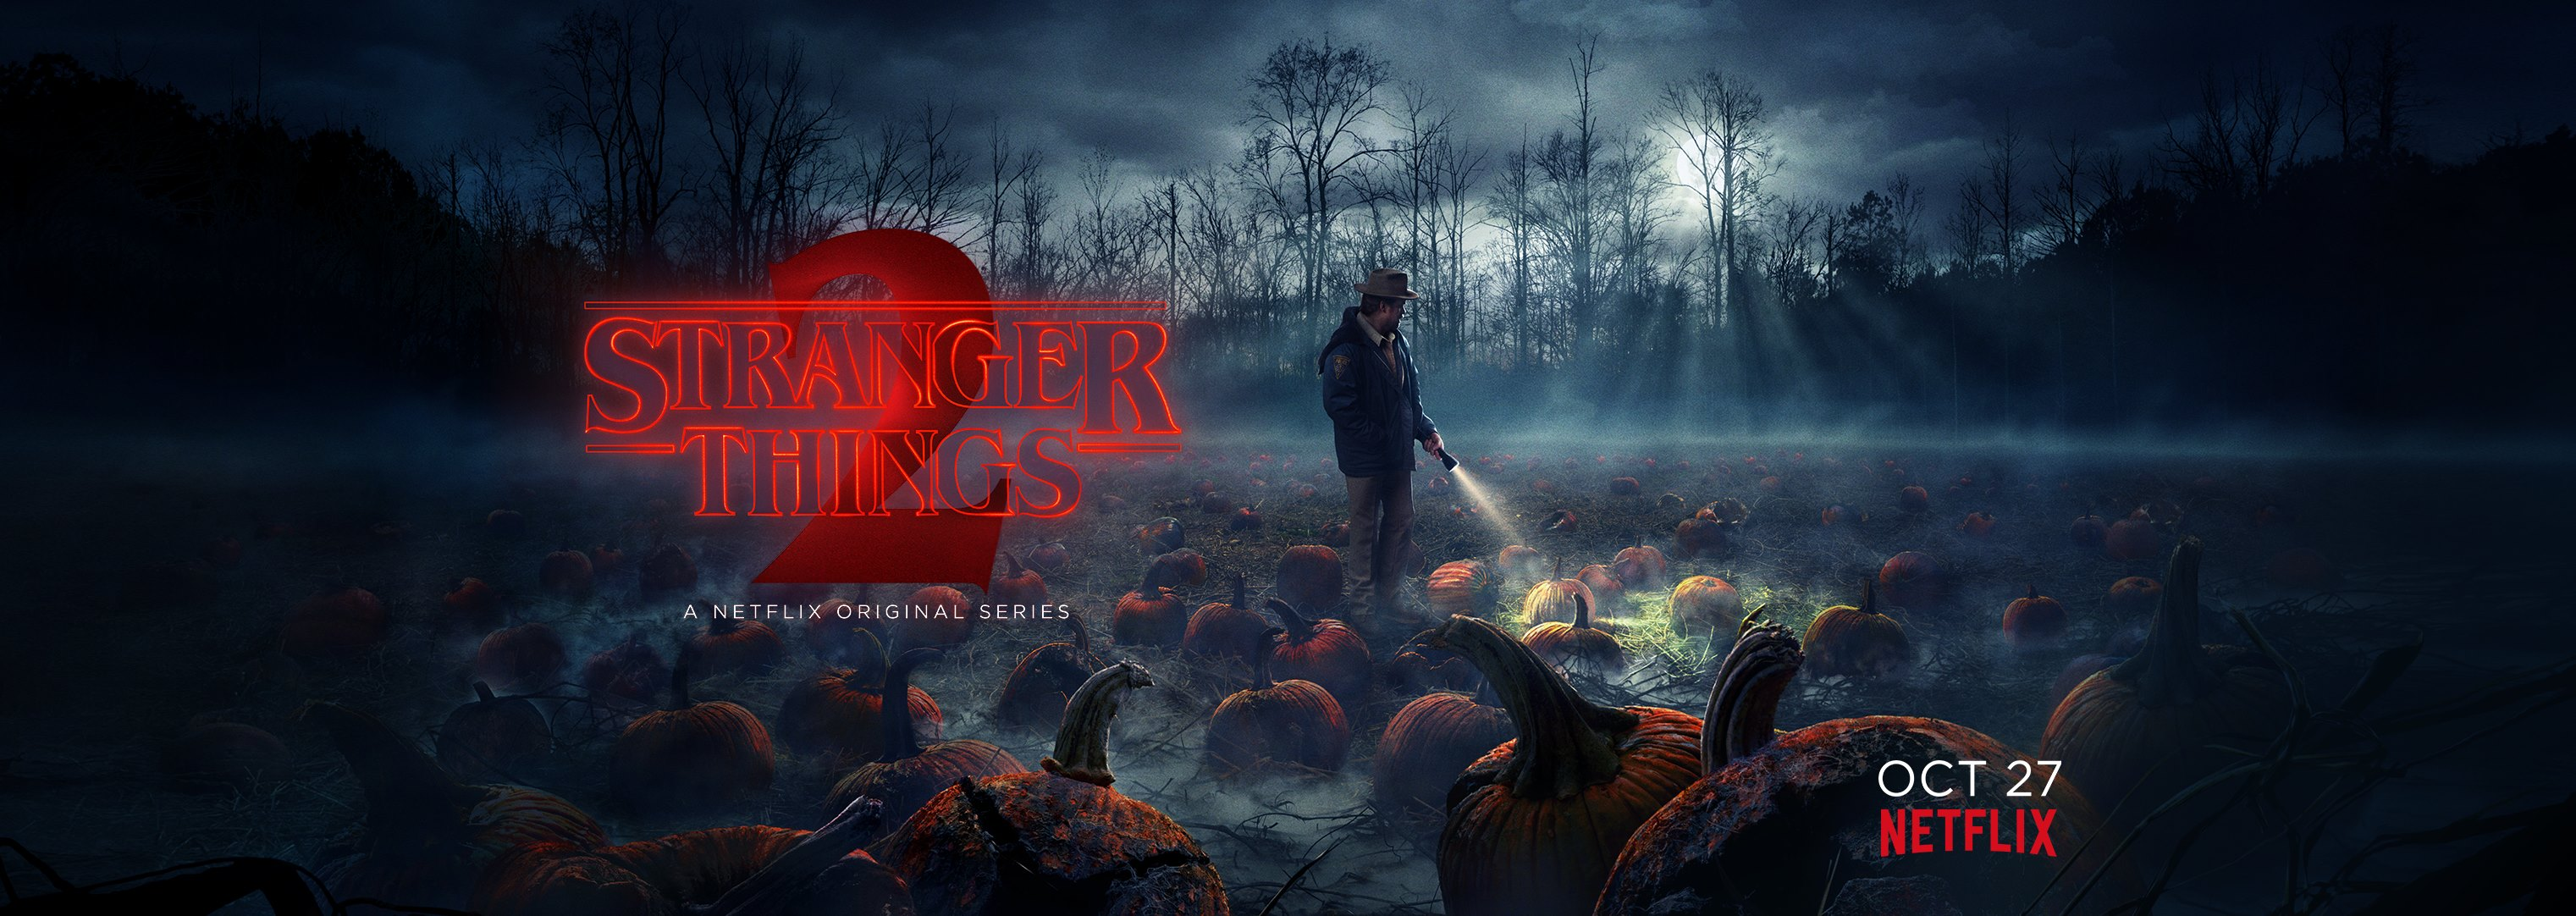 Stranger Things on Netflix: Cancelled or Season 3? (Release